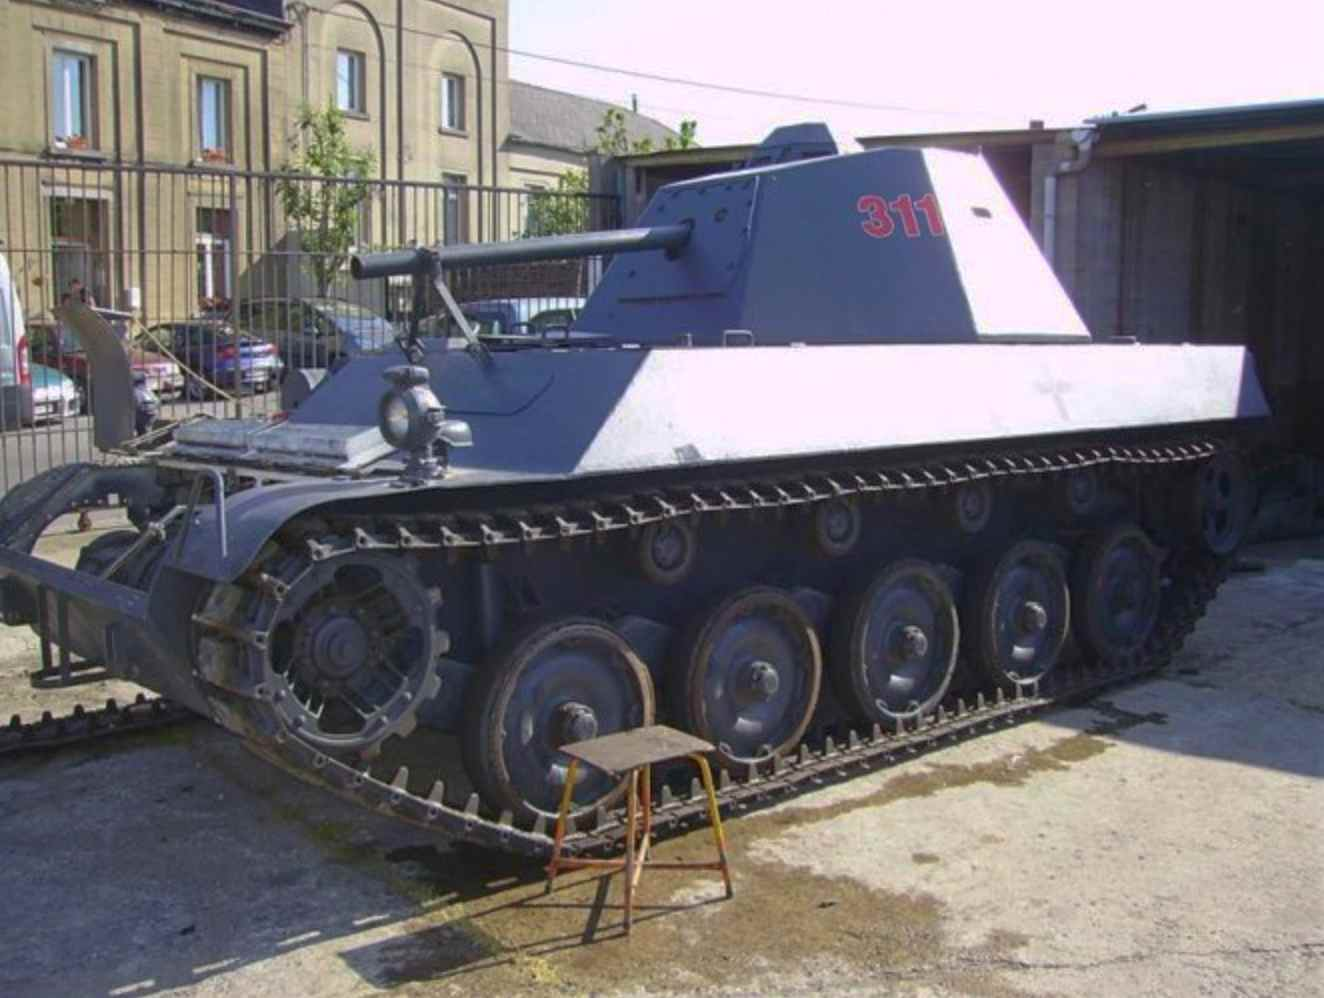 Mowag Pirat, tanks for sale to civilians